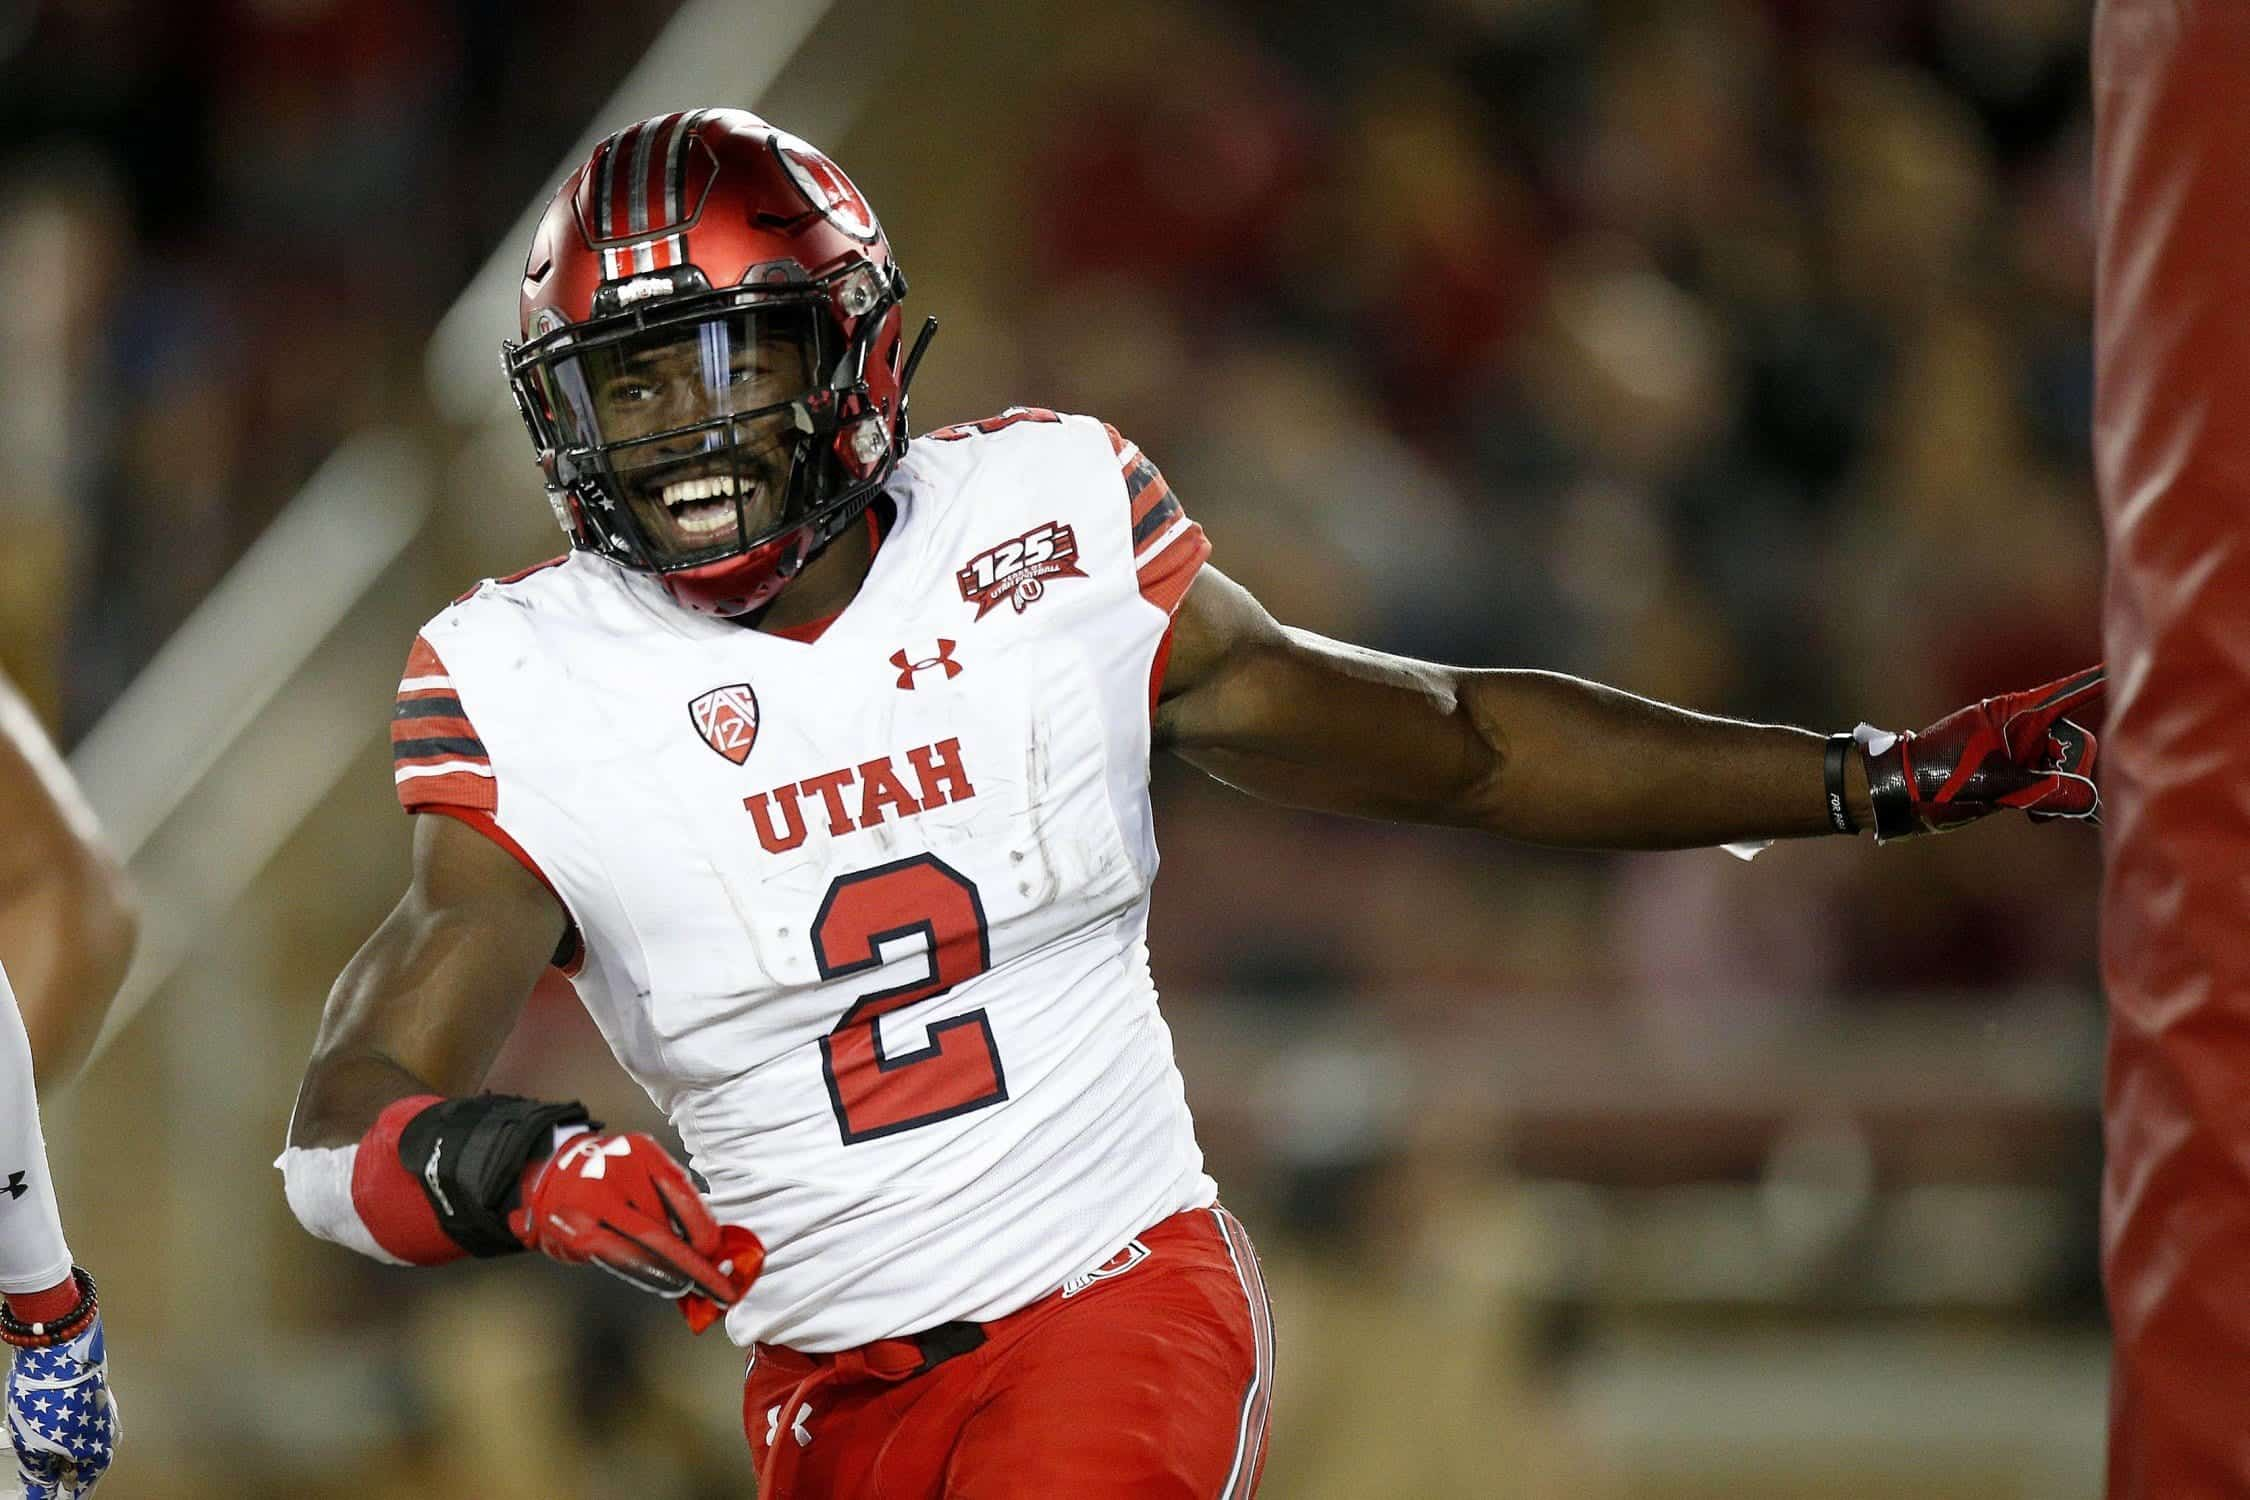 Best Running Back In The Nfl 2020 2020 NFL Draft: Top 5 running backs in the Pac 12